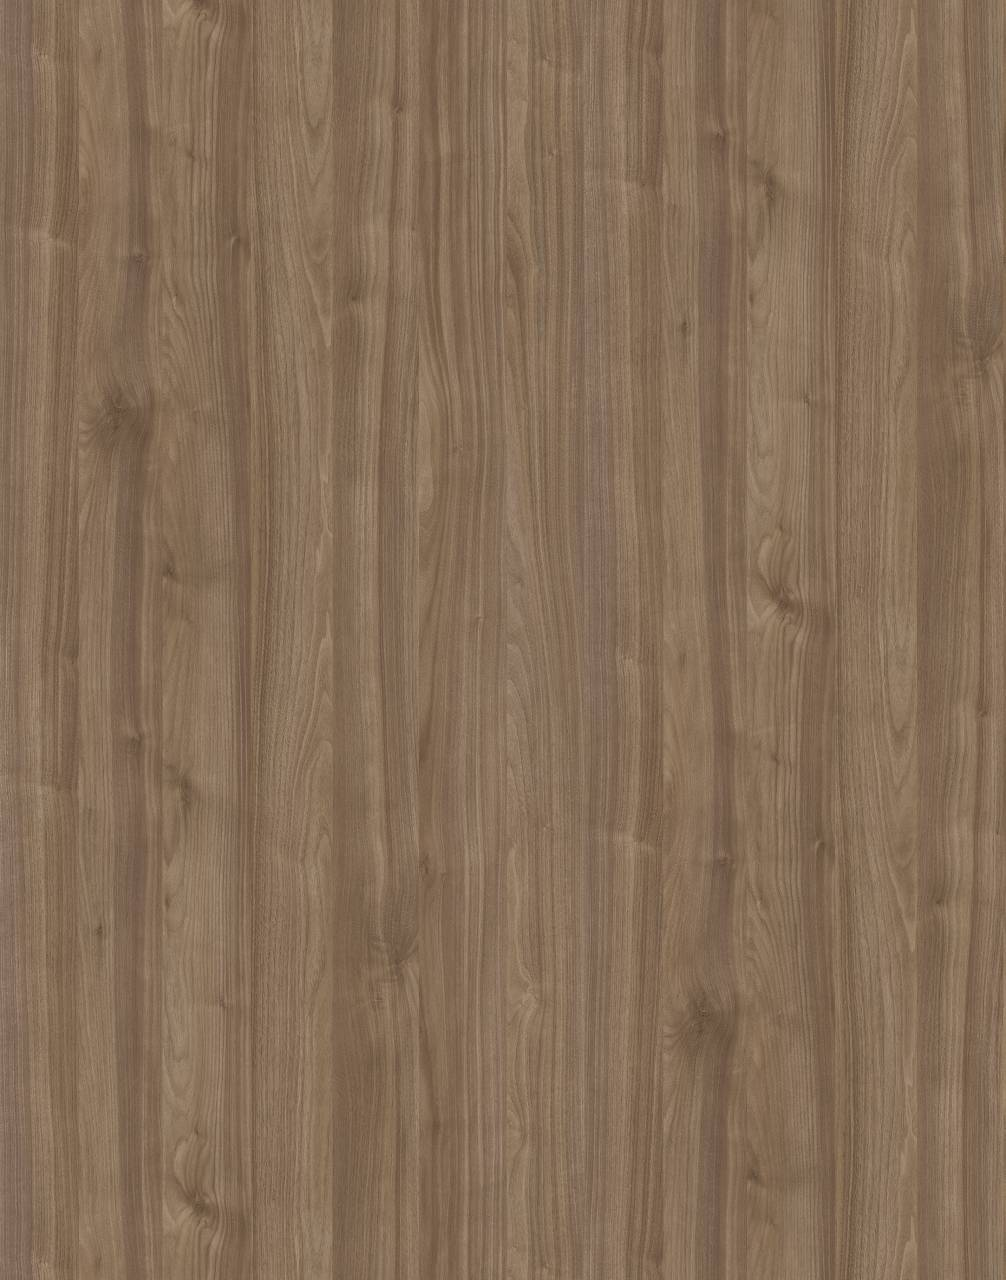 K009 Dark Select Walnut (мостра ЛПДЧ)